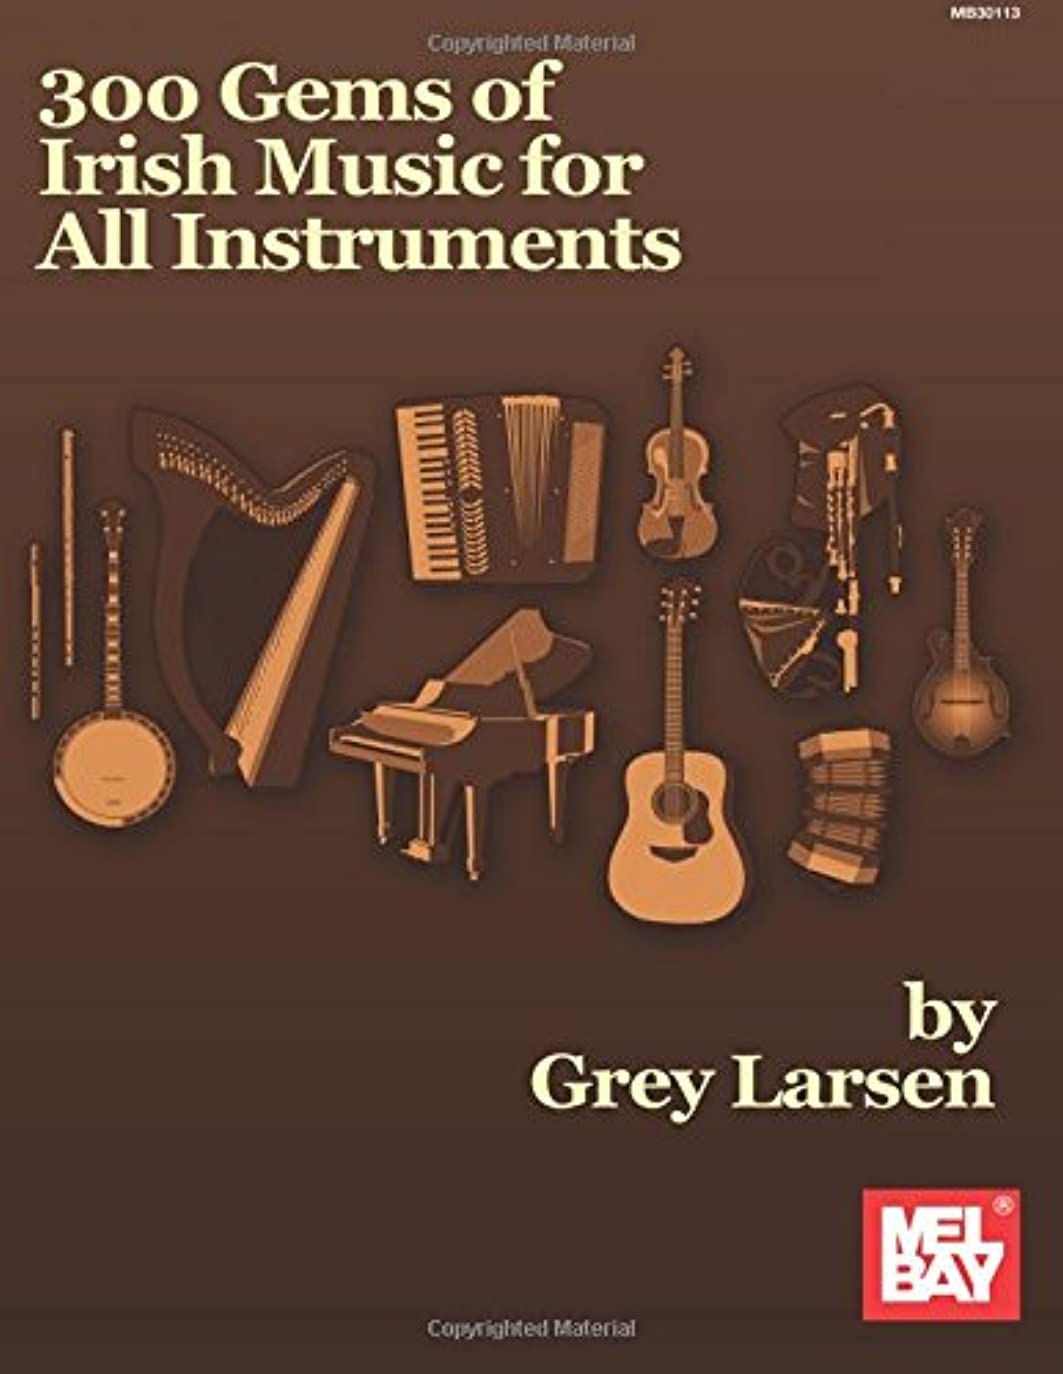 オーロック雑草よろめく300 Gems of Irish Music for All Instruments